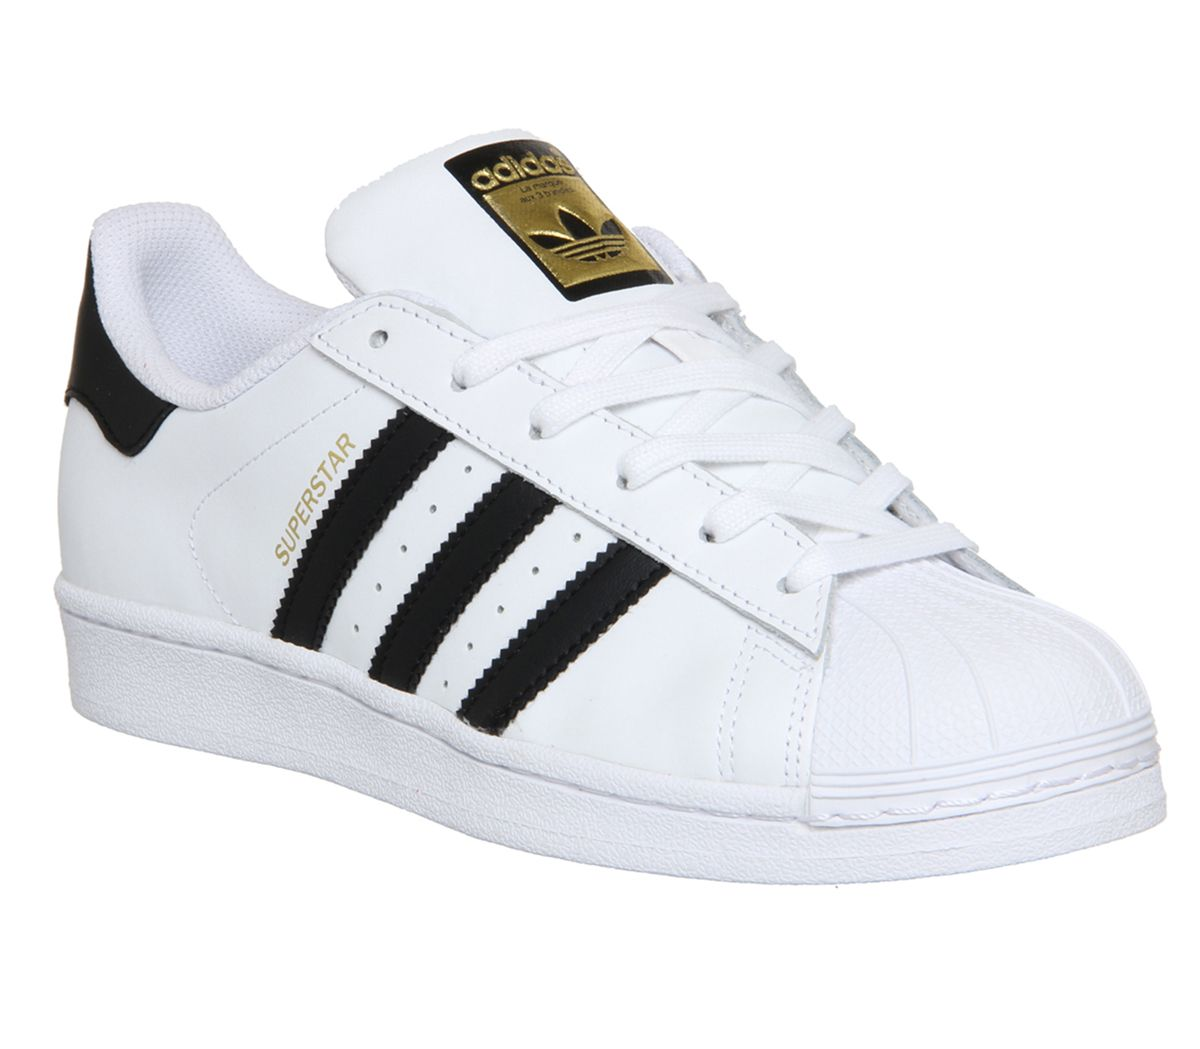 scarpe da tennis donna adidas superstar